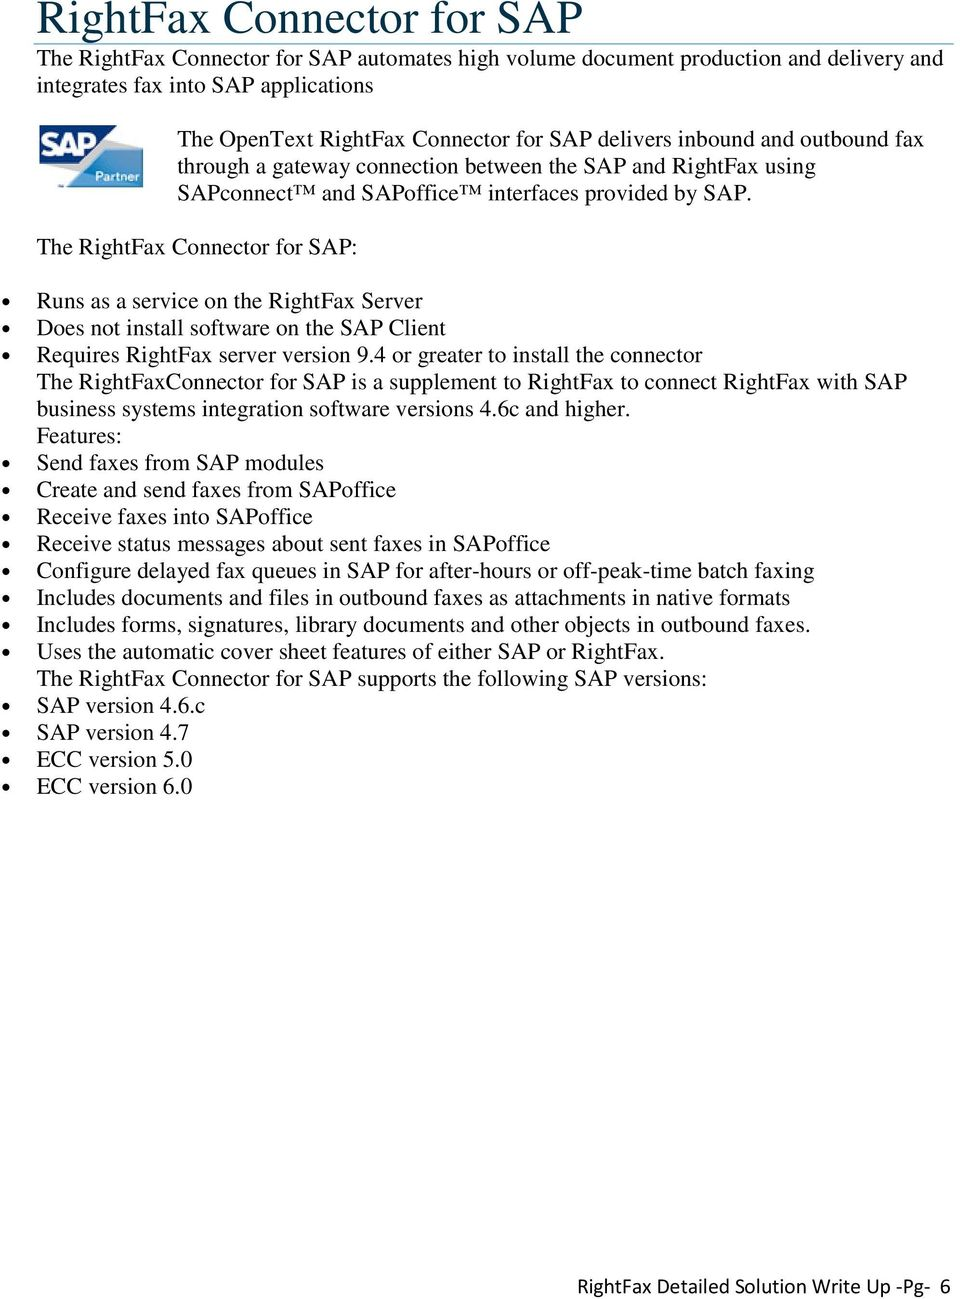 The RightFax Connector for SAP: Runs as a service on the RightFax Server Does not install software on the SAP Client Requires RightFax server version 9.